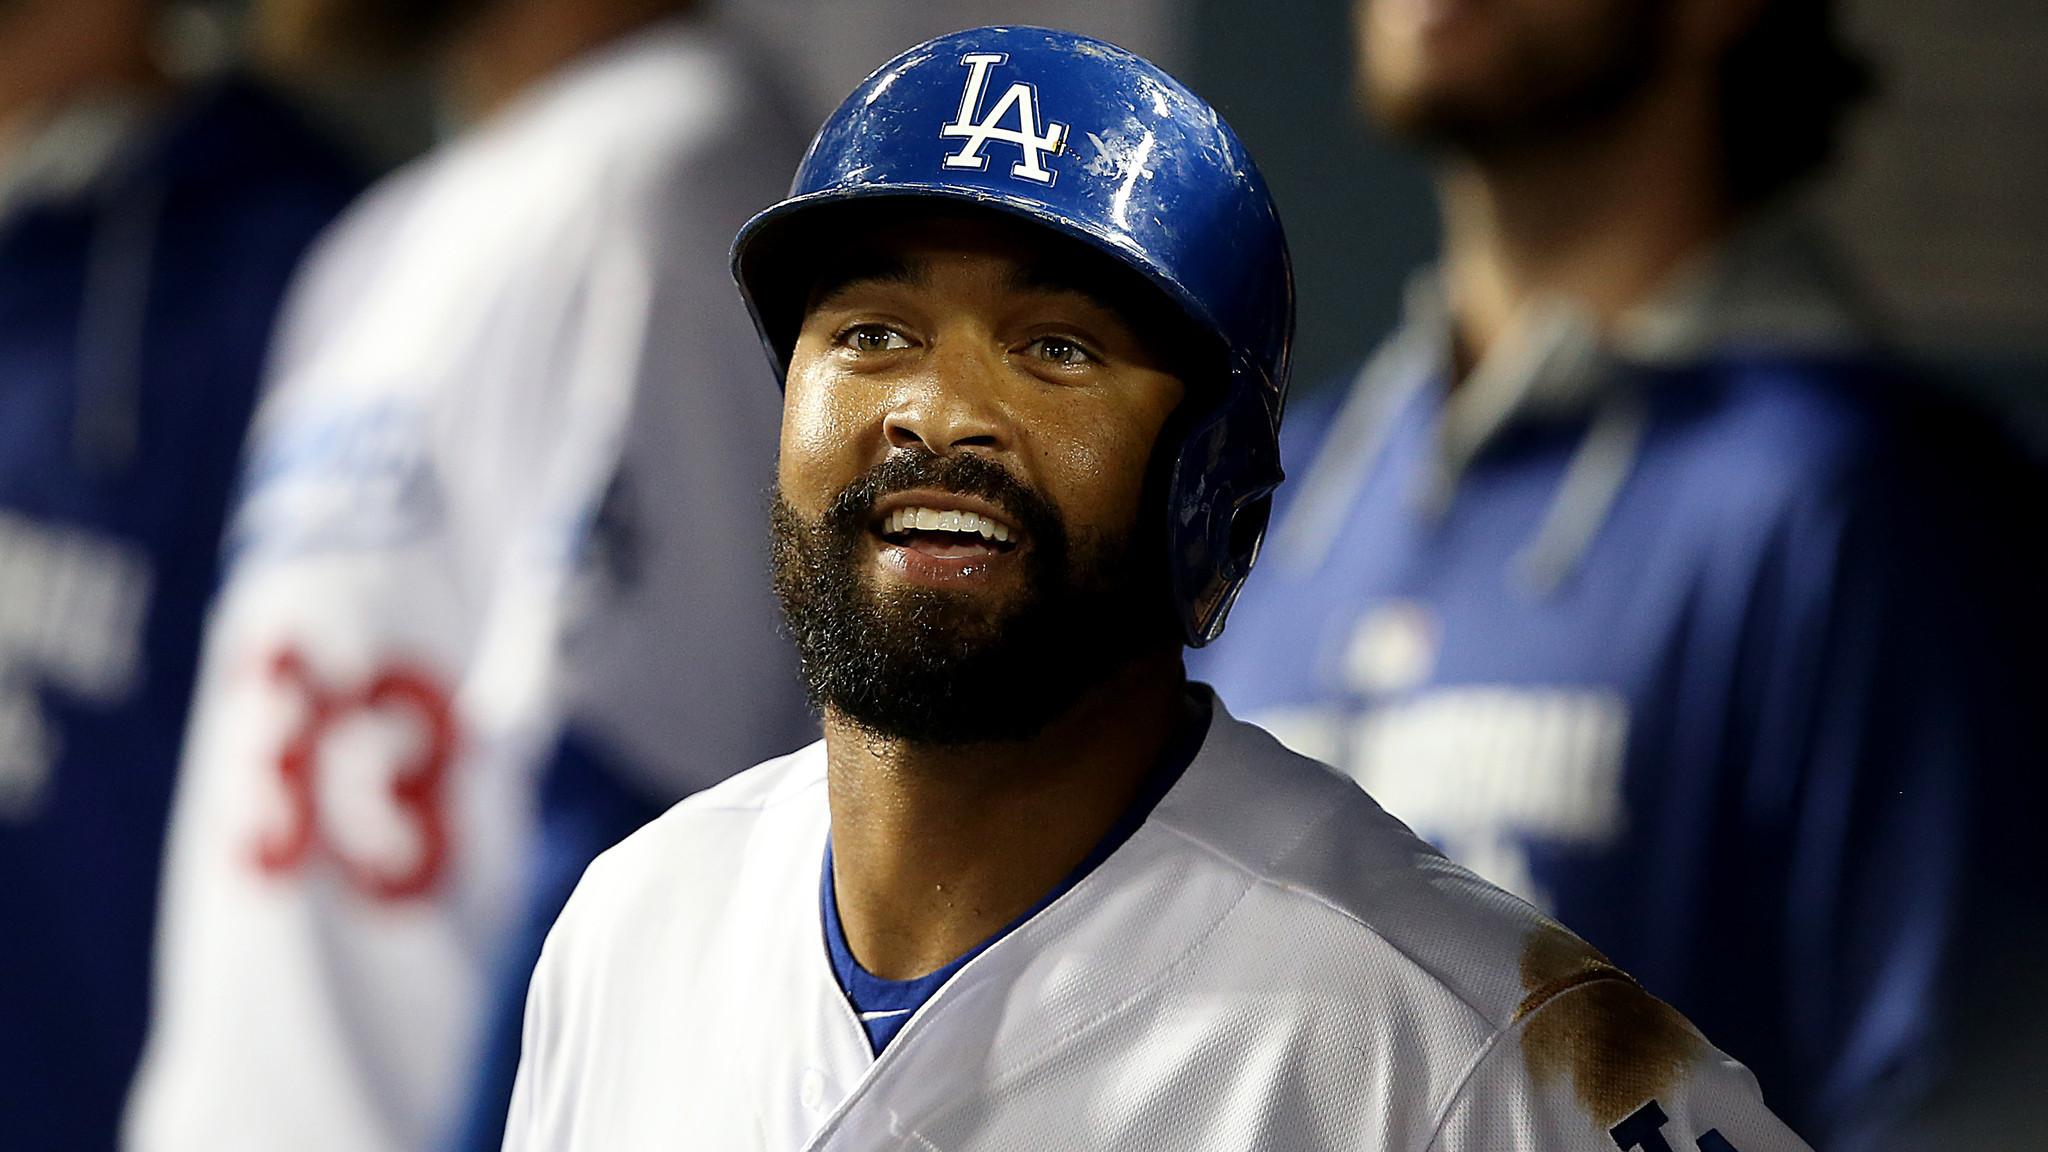 Matt Kemp, Dodgers keep rolling with 3-2 win over Braves